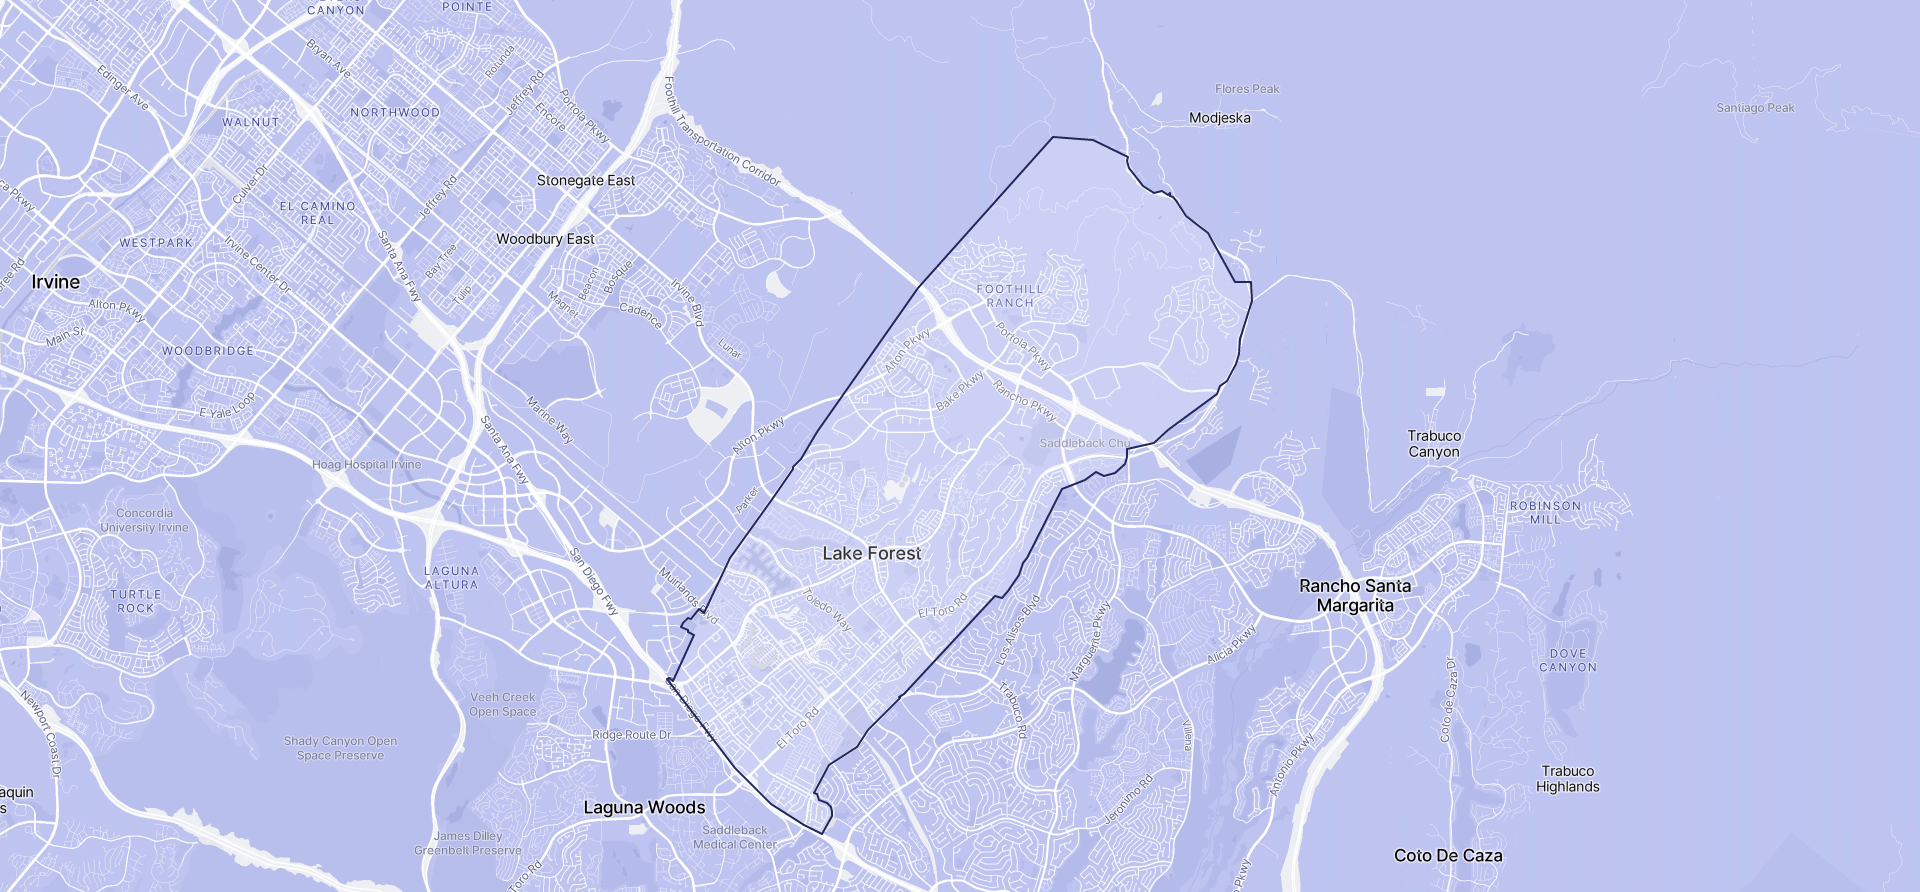 Image of Lake Forest boundaries on a map.